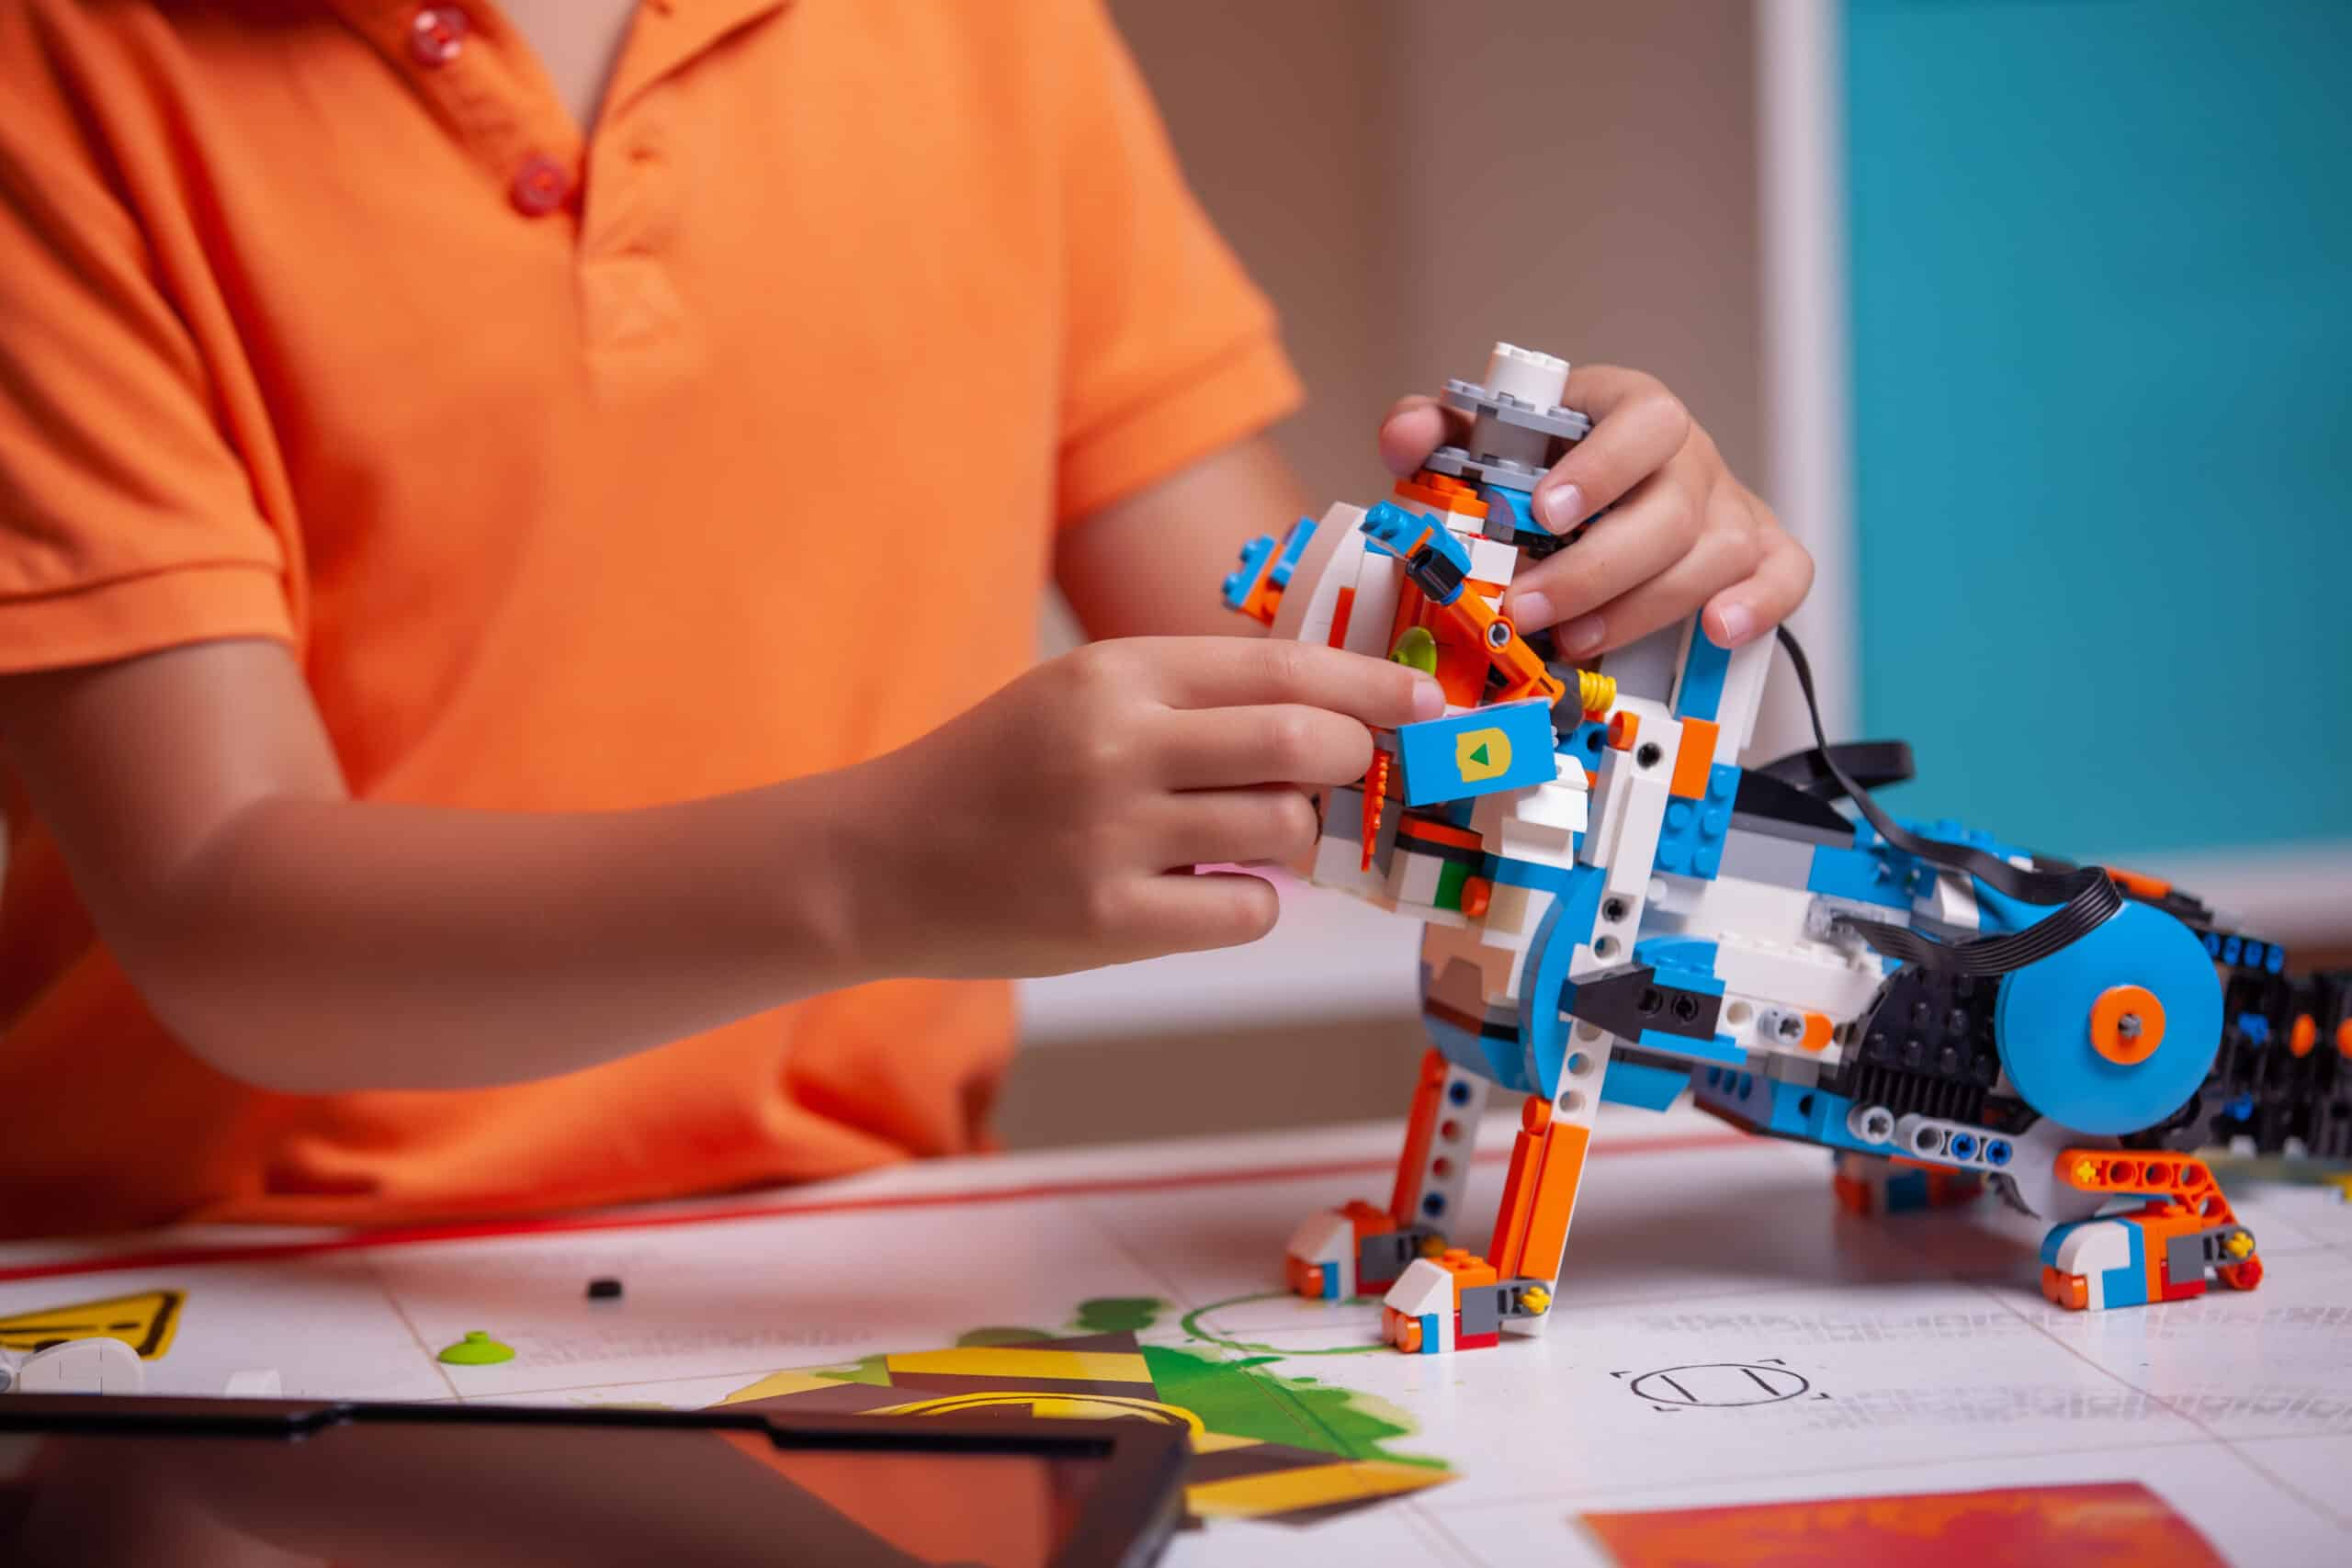 The Best Educational STEM Toys and Games for 5 to 8-year-olds